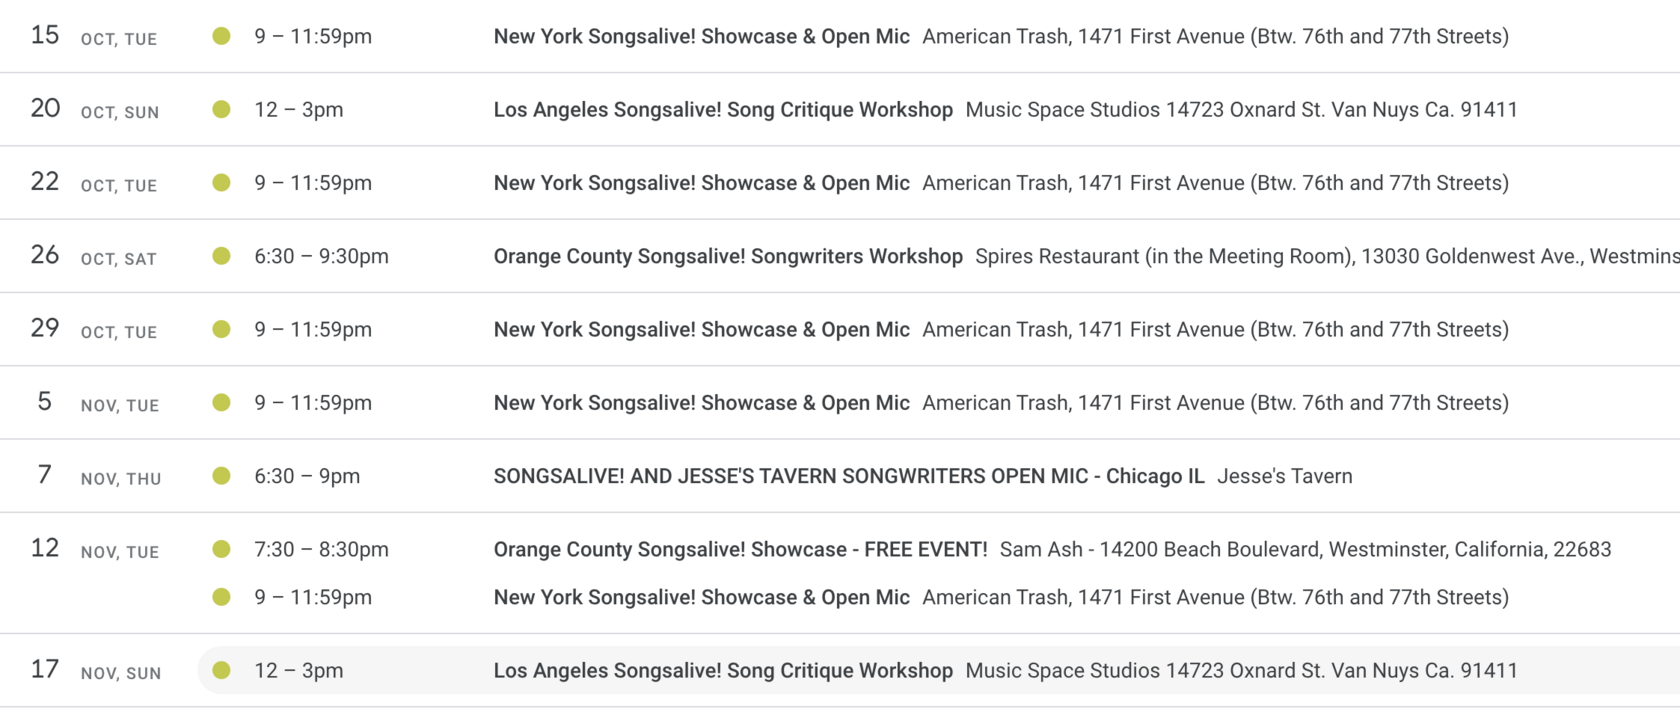 songsaliveoct2019events.png